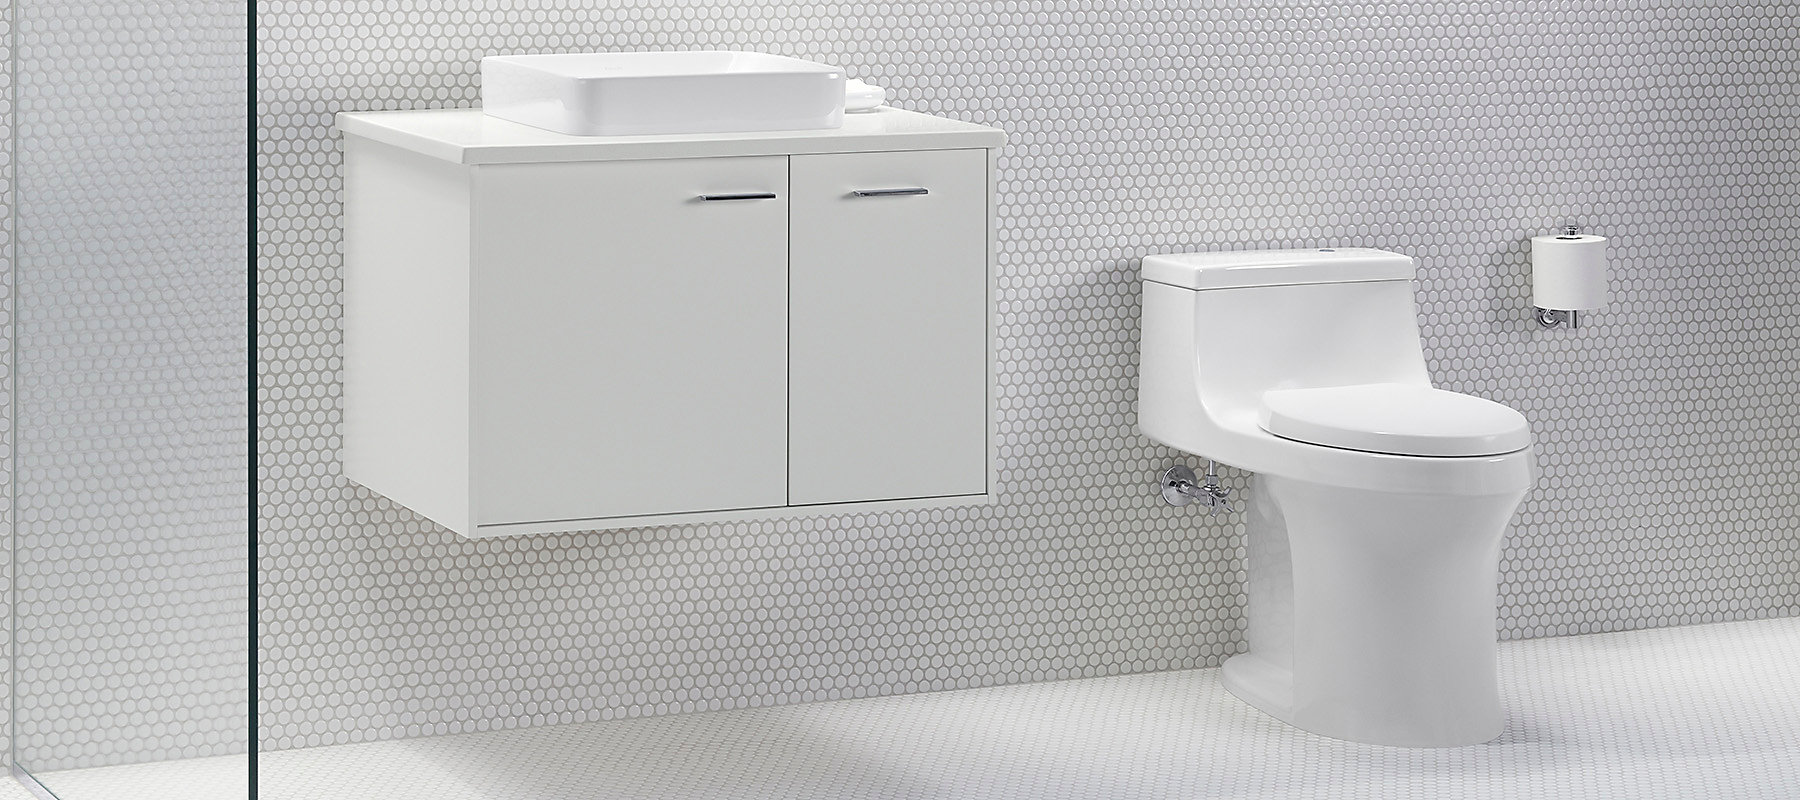 Bathroom kohler for Water tech bathroom fittings